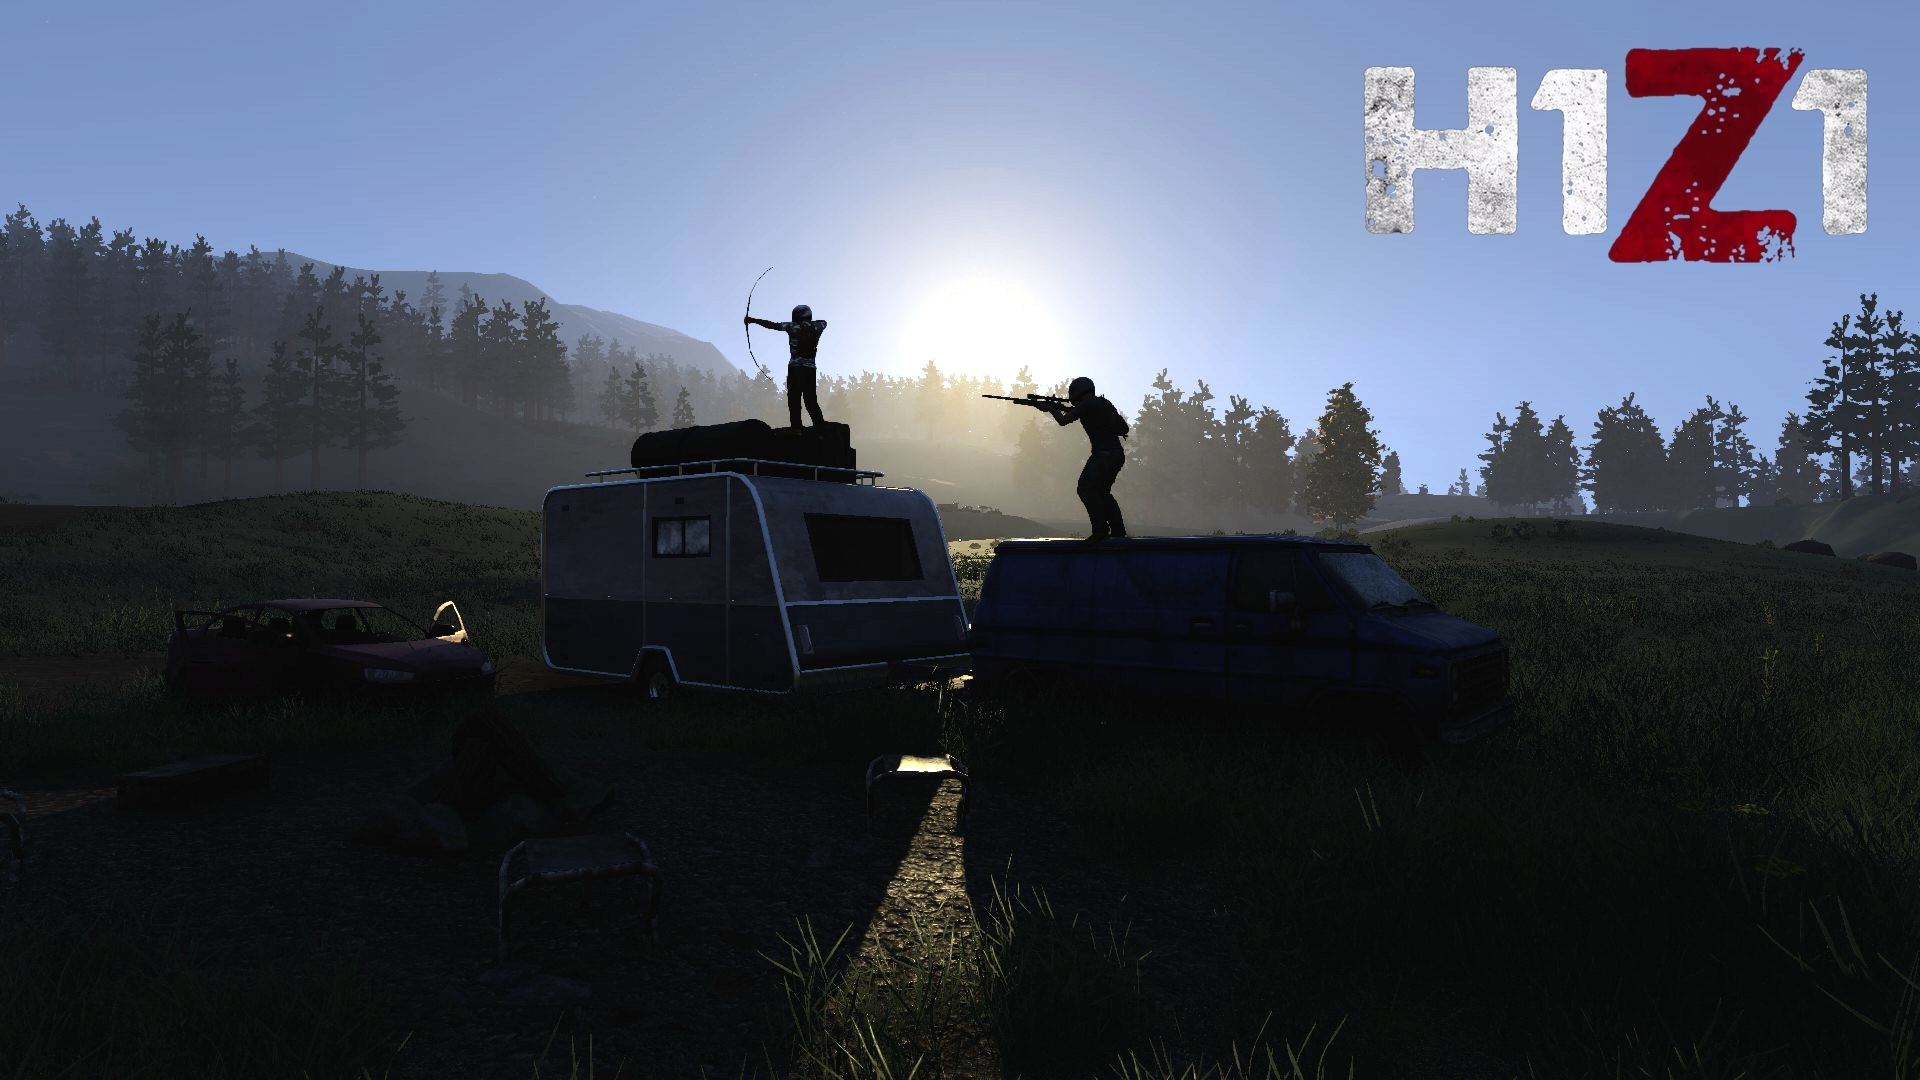 h1z1 to split - the strategy gamer